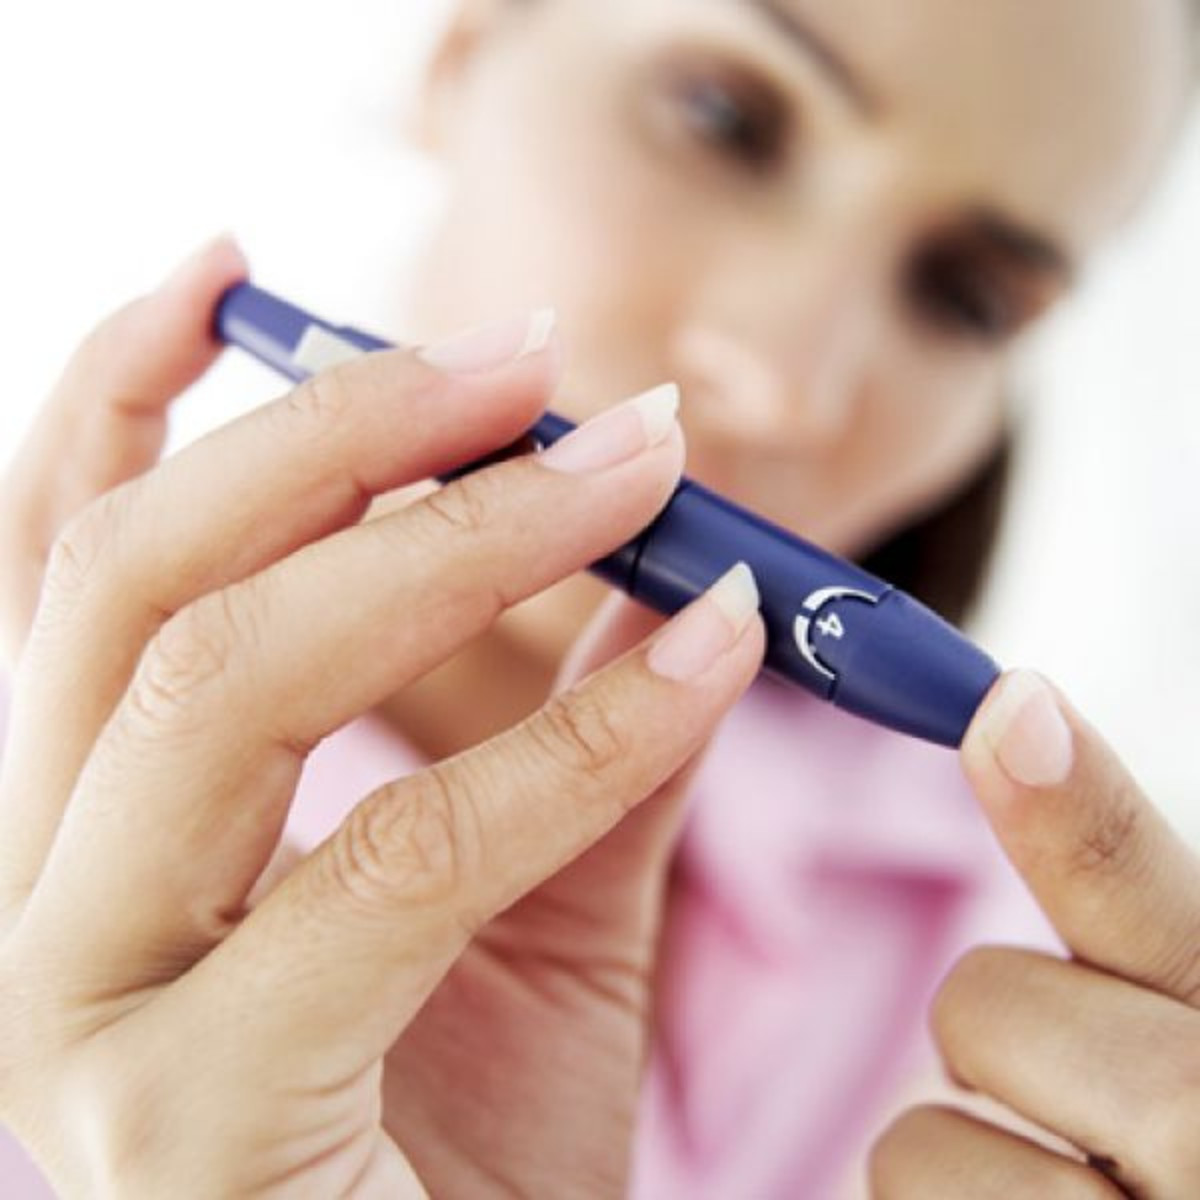 Monitoring their blood glucose levels is an important daily task that those with diabetes have to deal with.